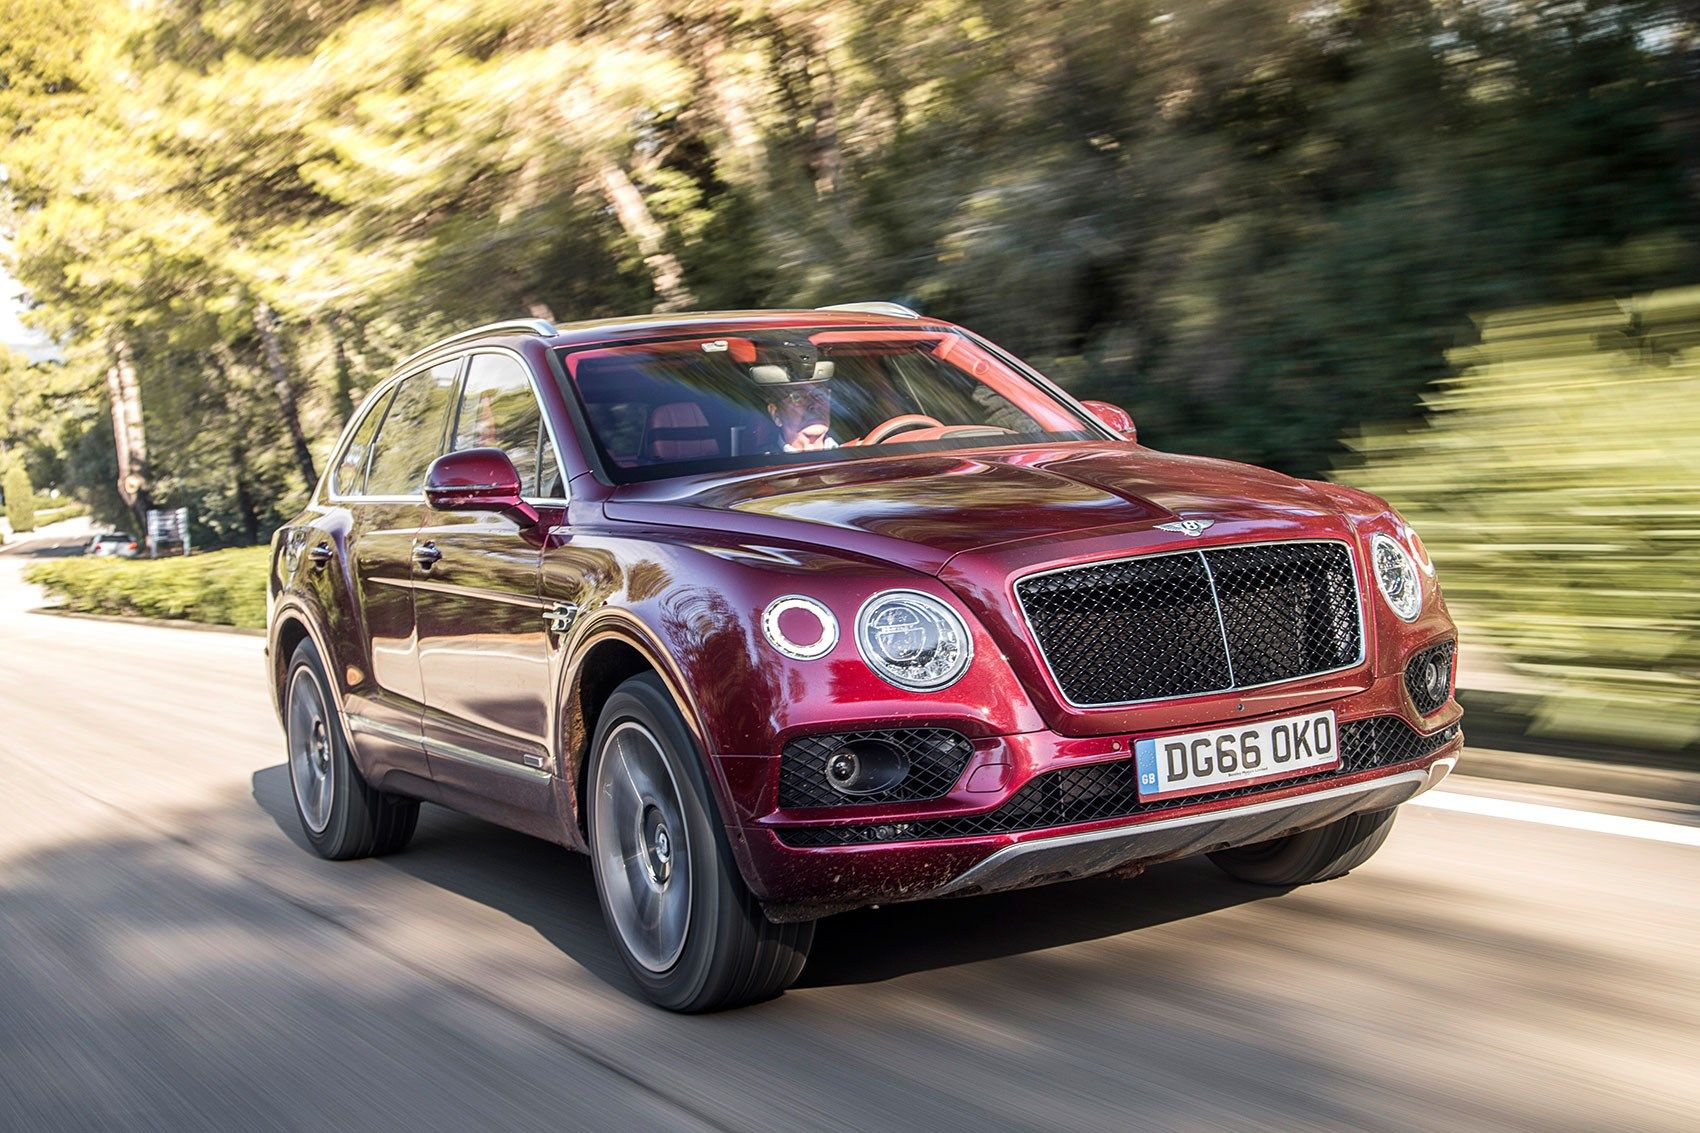 Bentley Bentayga Diesel expert review by CAR magazine UK full UK